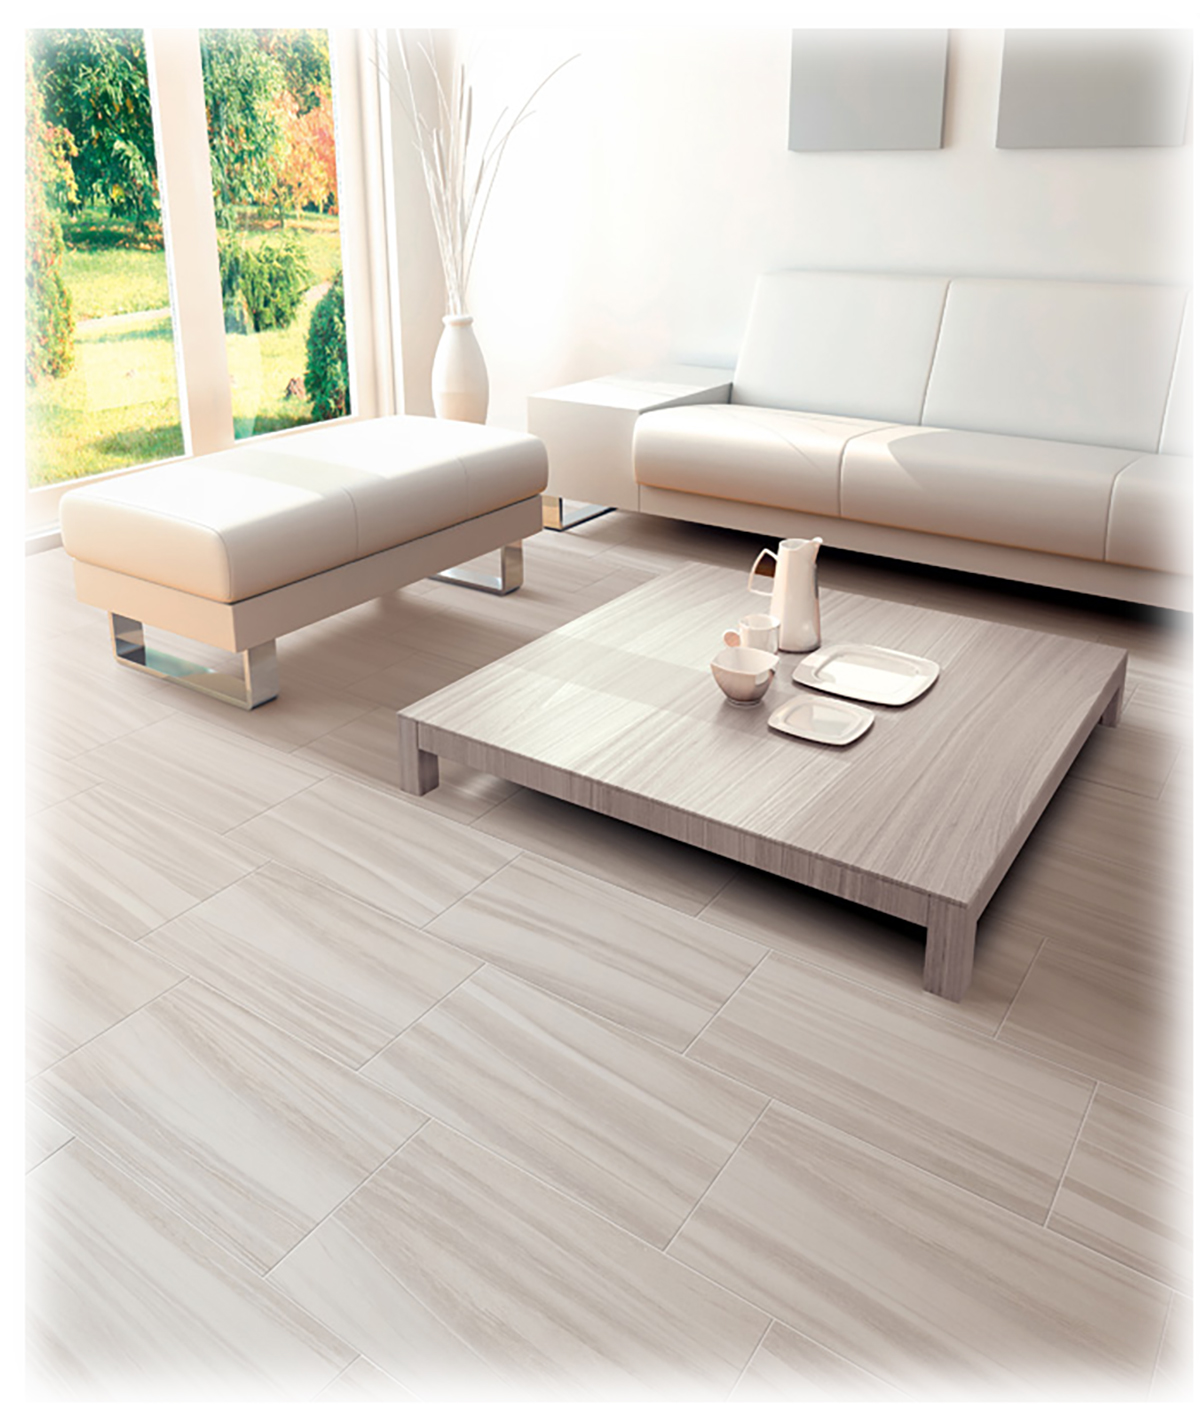 Porcelain tile offered by foster flooring for high quality stone and porcelain tile superior in so many ways dailygadgetfo Choice Image